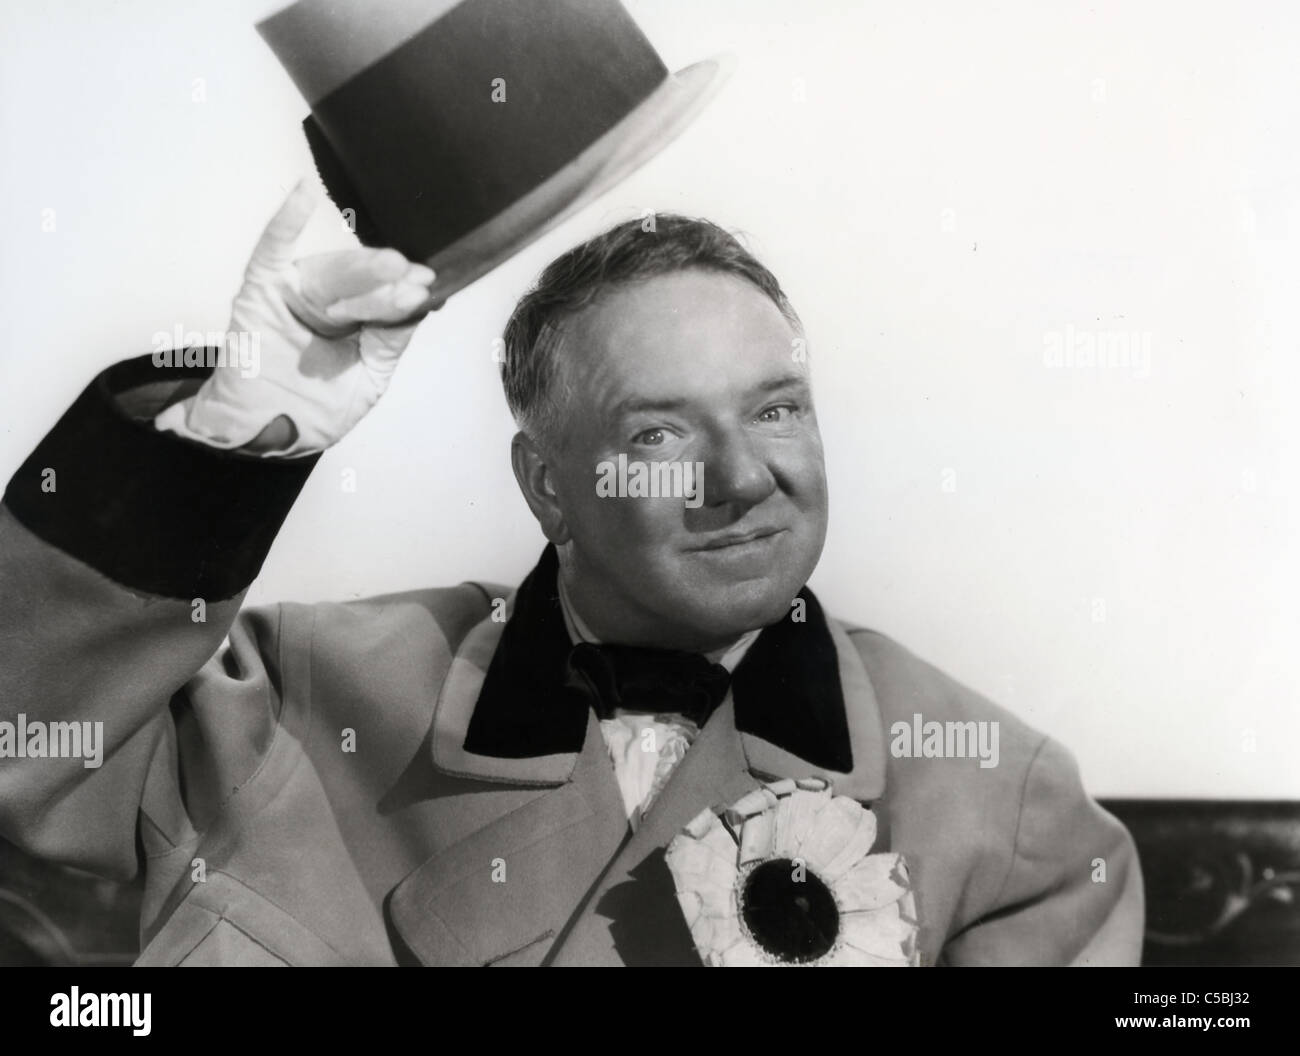 OLD FASHIONED WAY (1934) W.C FIELDS WILLIAM BEAUDINE (DIR) 004 MOVIESTORE COLLECTION LTD - Stock Image